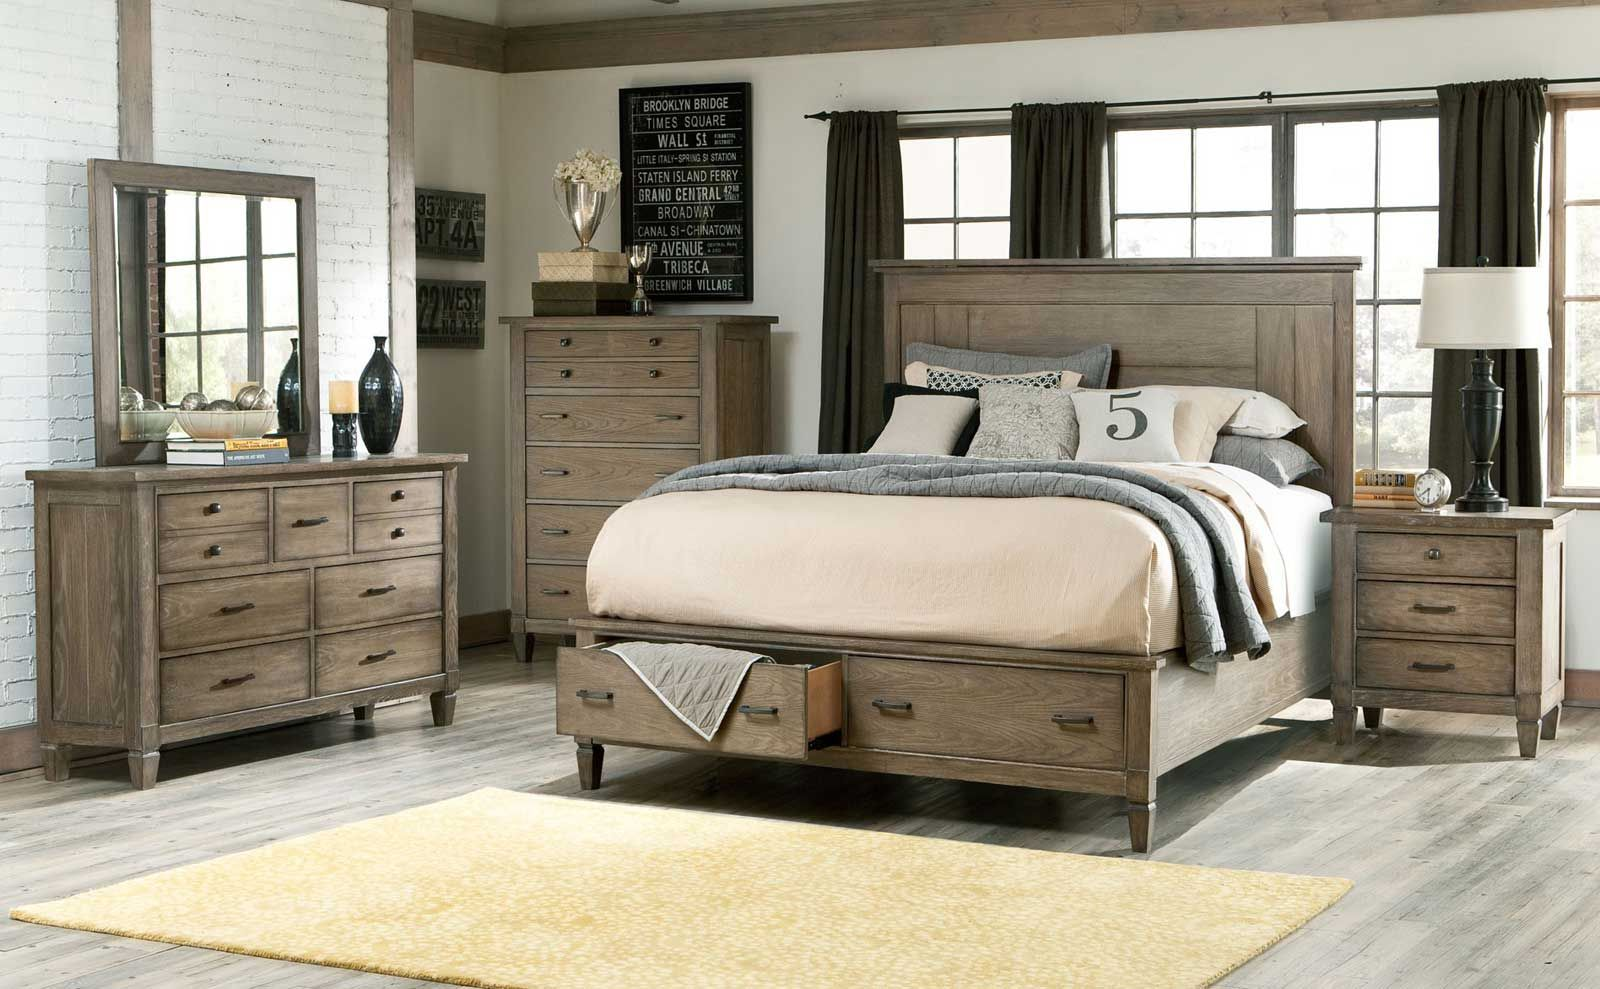 Solid Wood Bedroom Suites Image Result For Wood King Size Bedroom Sets Farm House Master